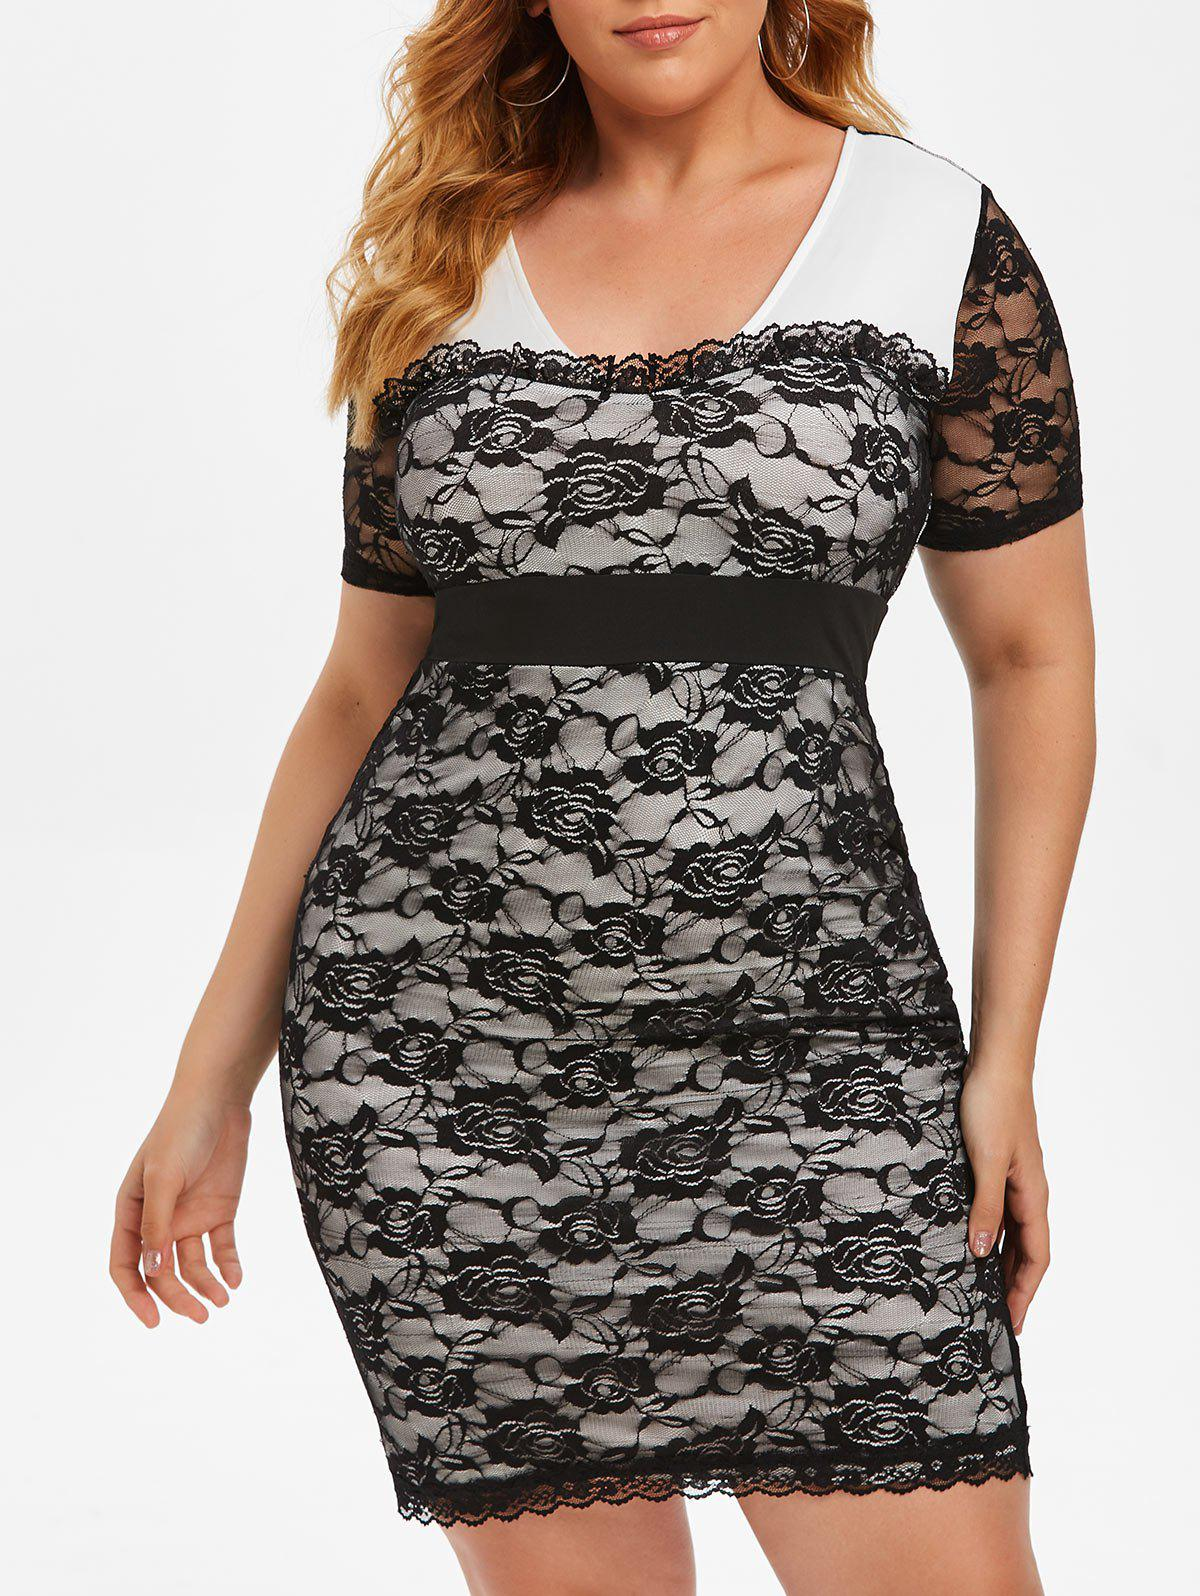 Chic Plus Size Lace See Thru Frilled Tight Plunging Dress